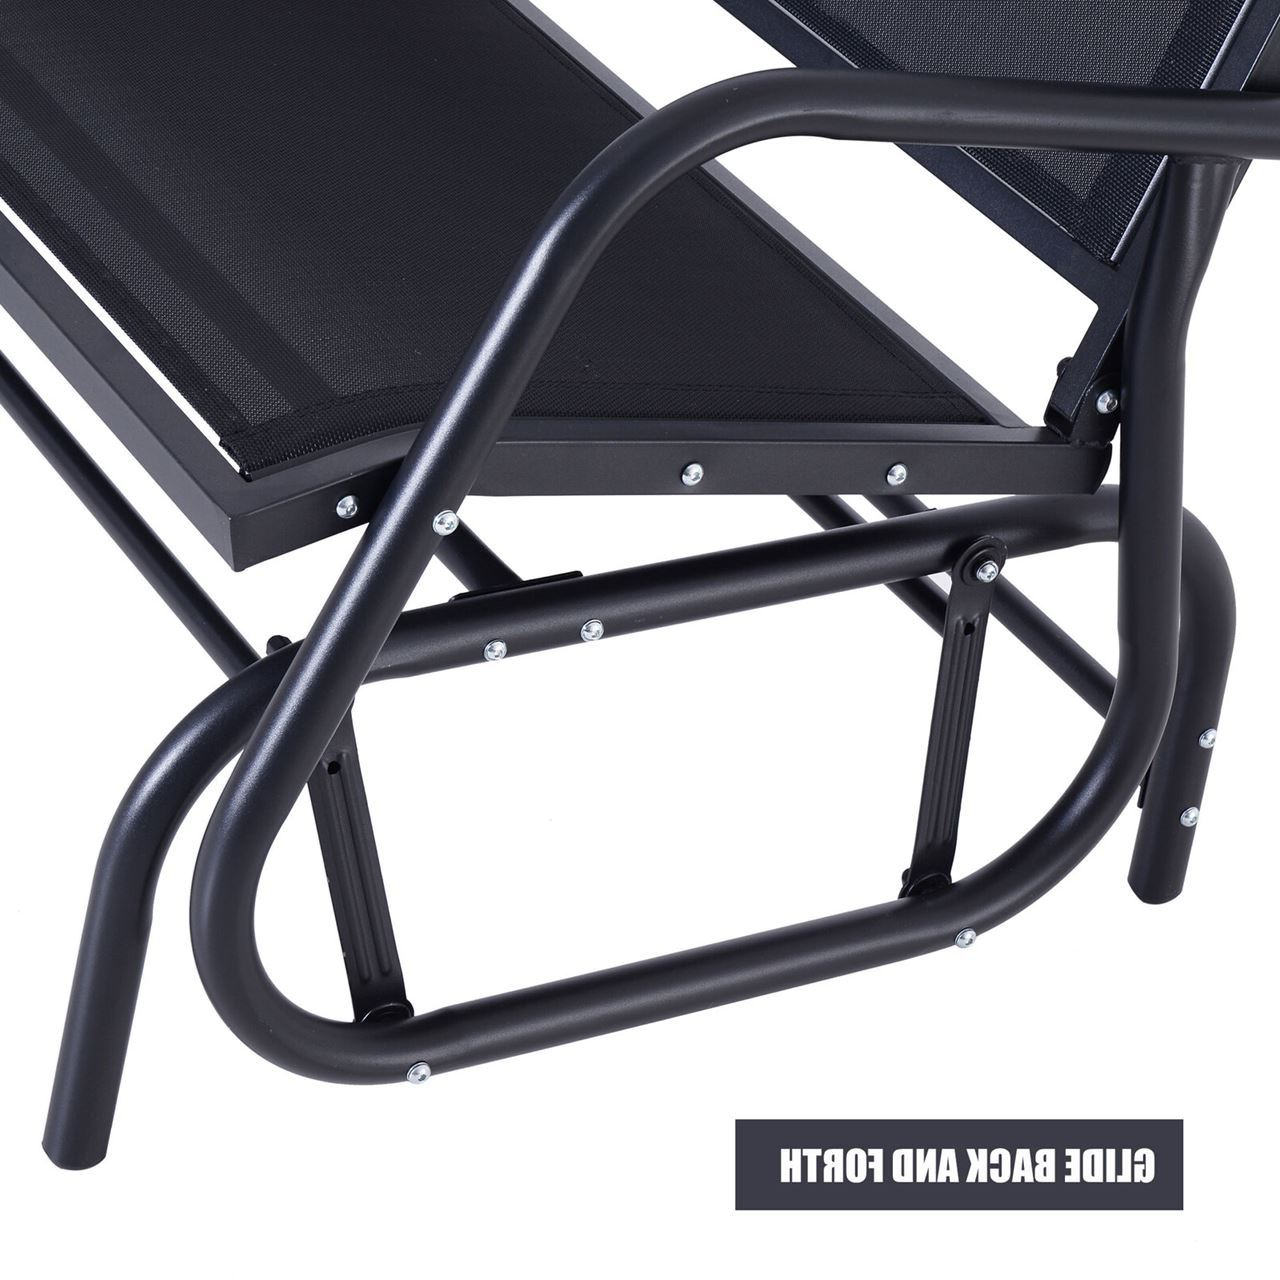 Outdoor Patio Swing Glider Bench Chairs Regarding Fashionable Outdoor Patio Swing Glider Bench Chair – Dark Gray (Gallery 29 of 30)